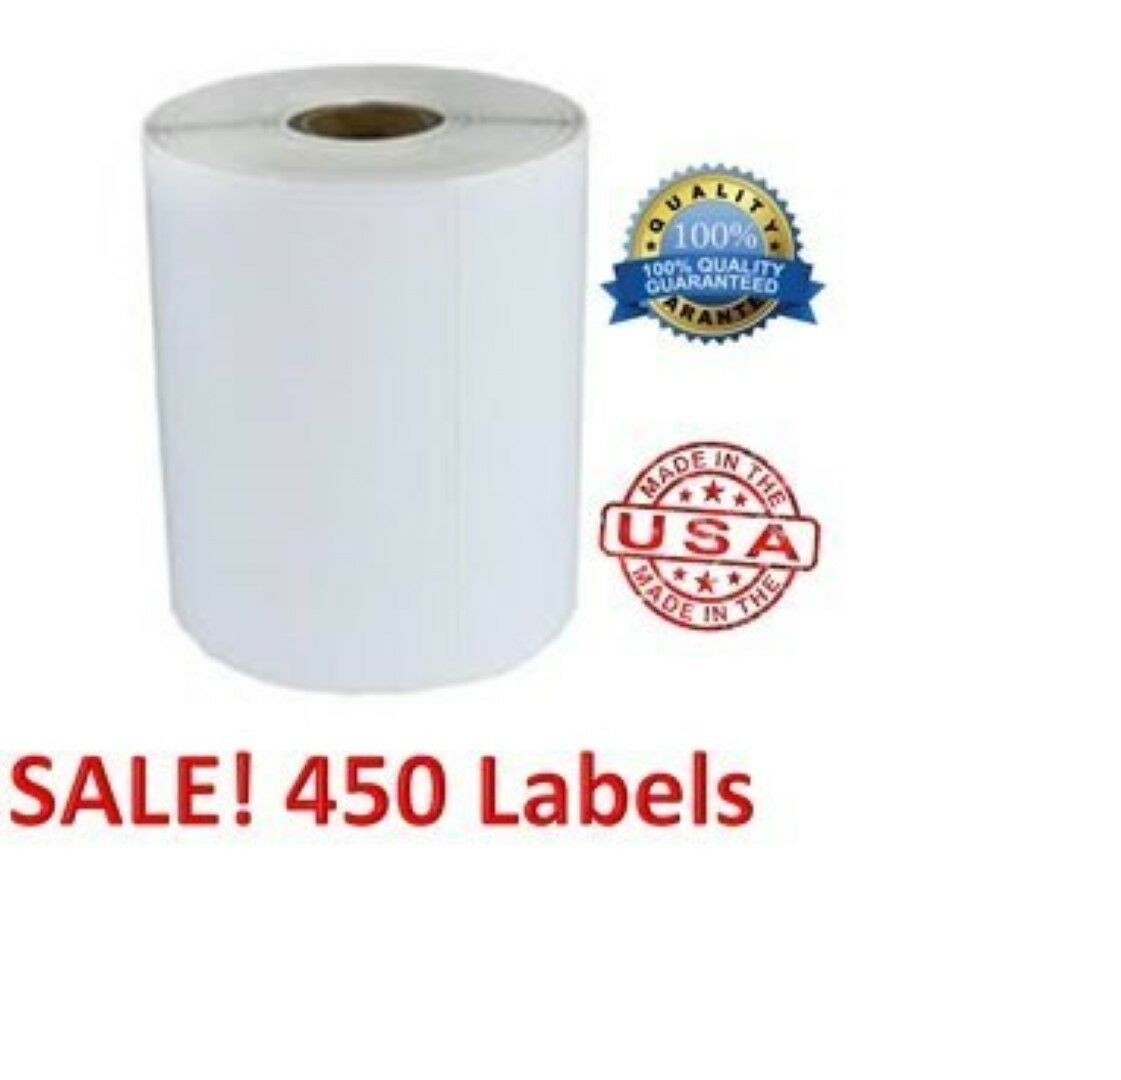 3 Rolls Of 450 Labels Each 4x6 High Quality Direct Thermal 1  Core PPS4-6450DT3